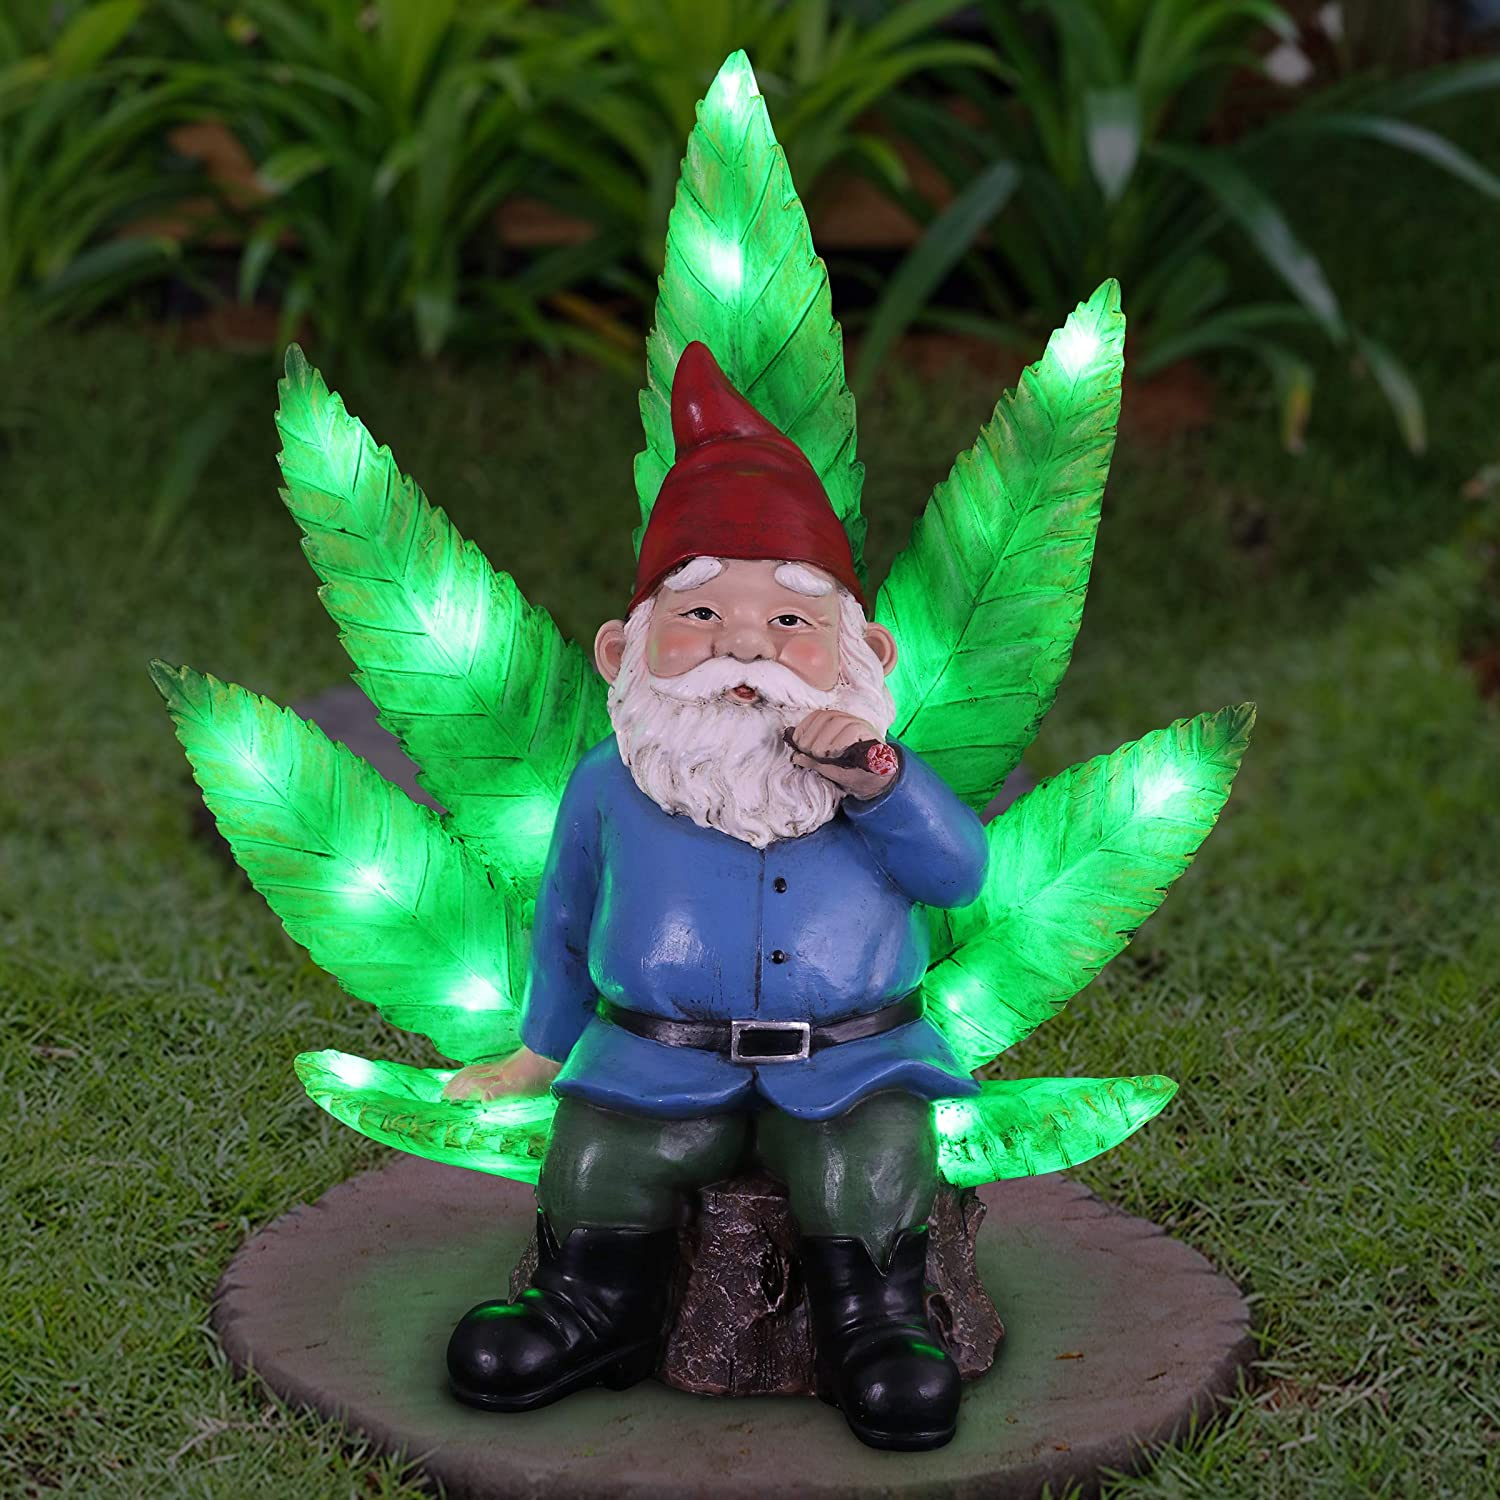 Exhart Good Time Ganja Throne Gnome Statue | Hand Painted Gnome Art w/Battery Powered LED Light | Weed Smoking Gnome for Indoor & Outdoor Décor for Home | 11 L x 6